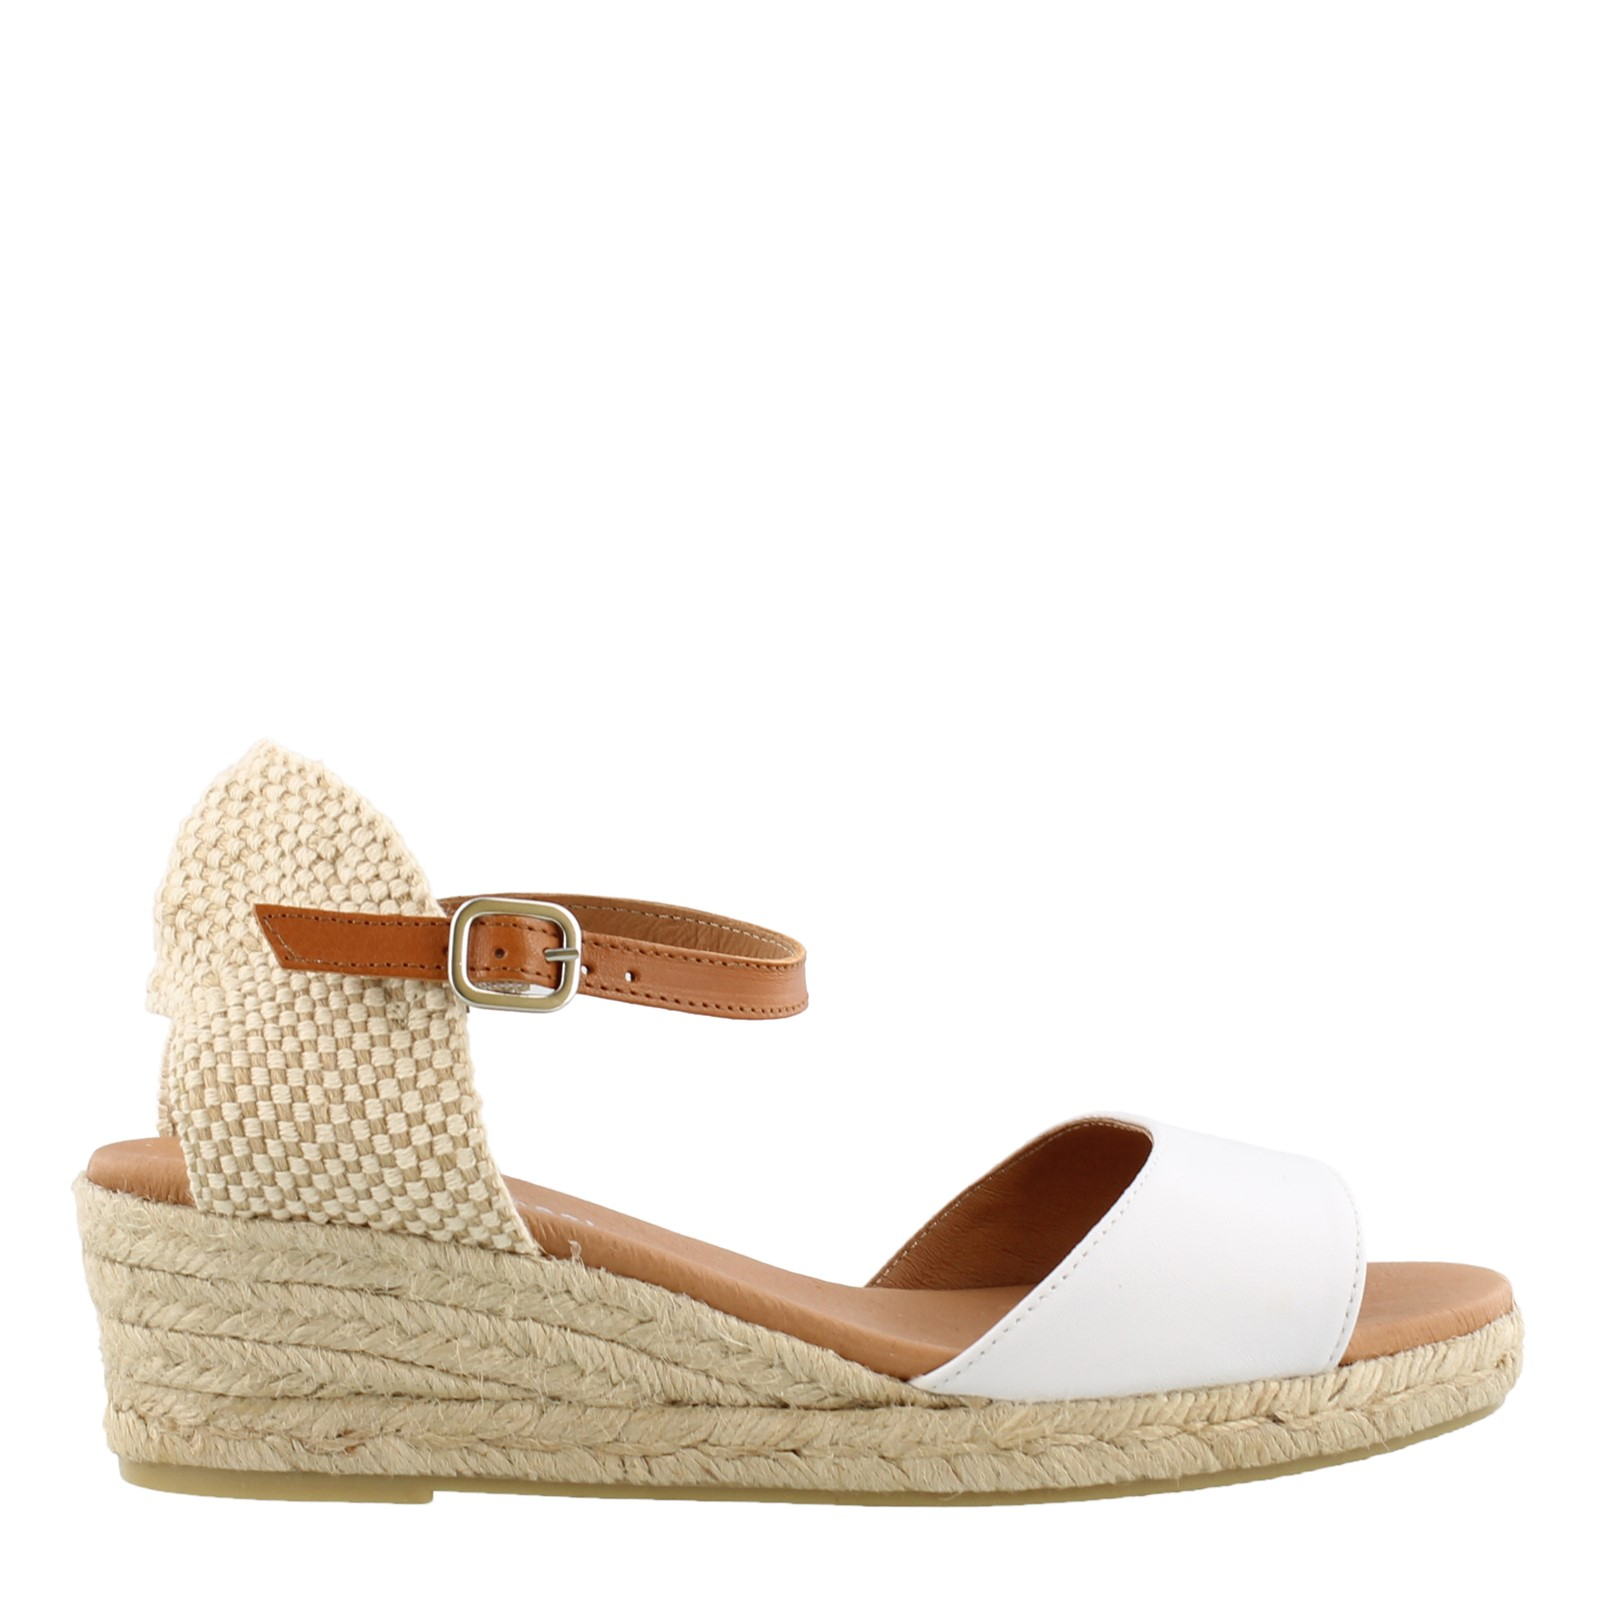 Women's Eric Michael, Trieste Sandals